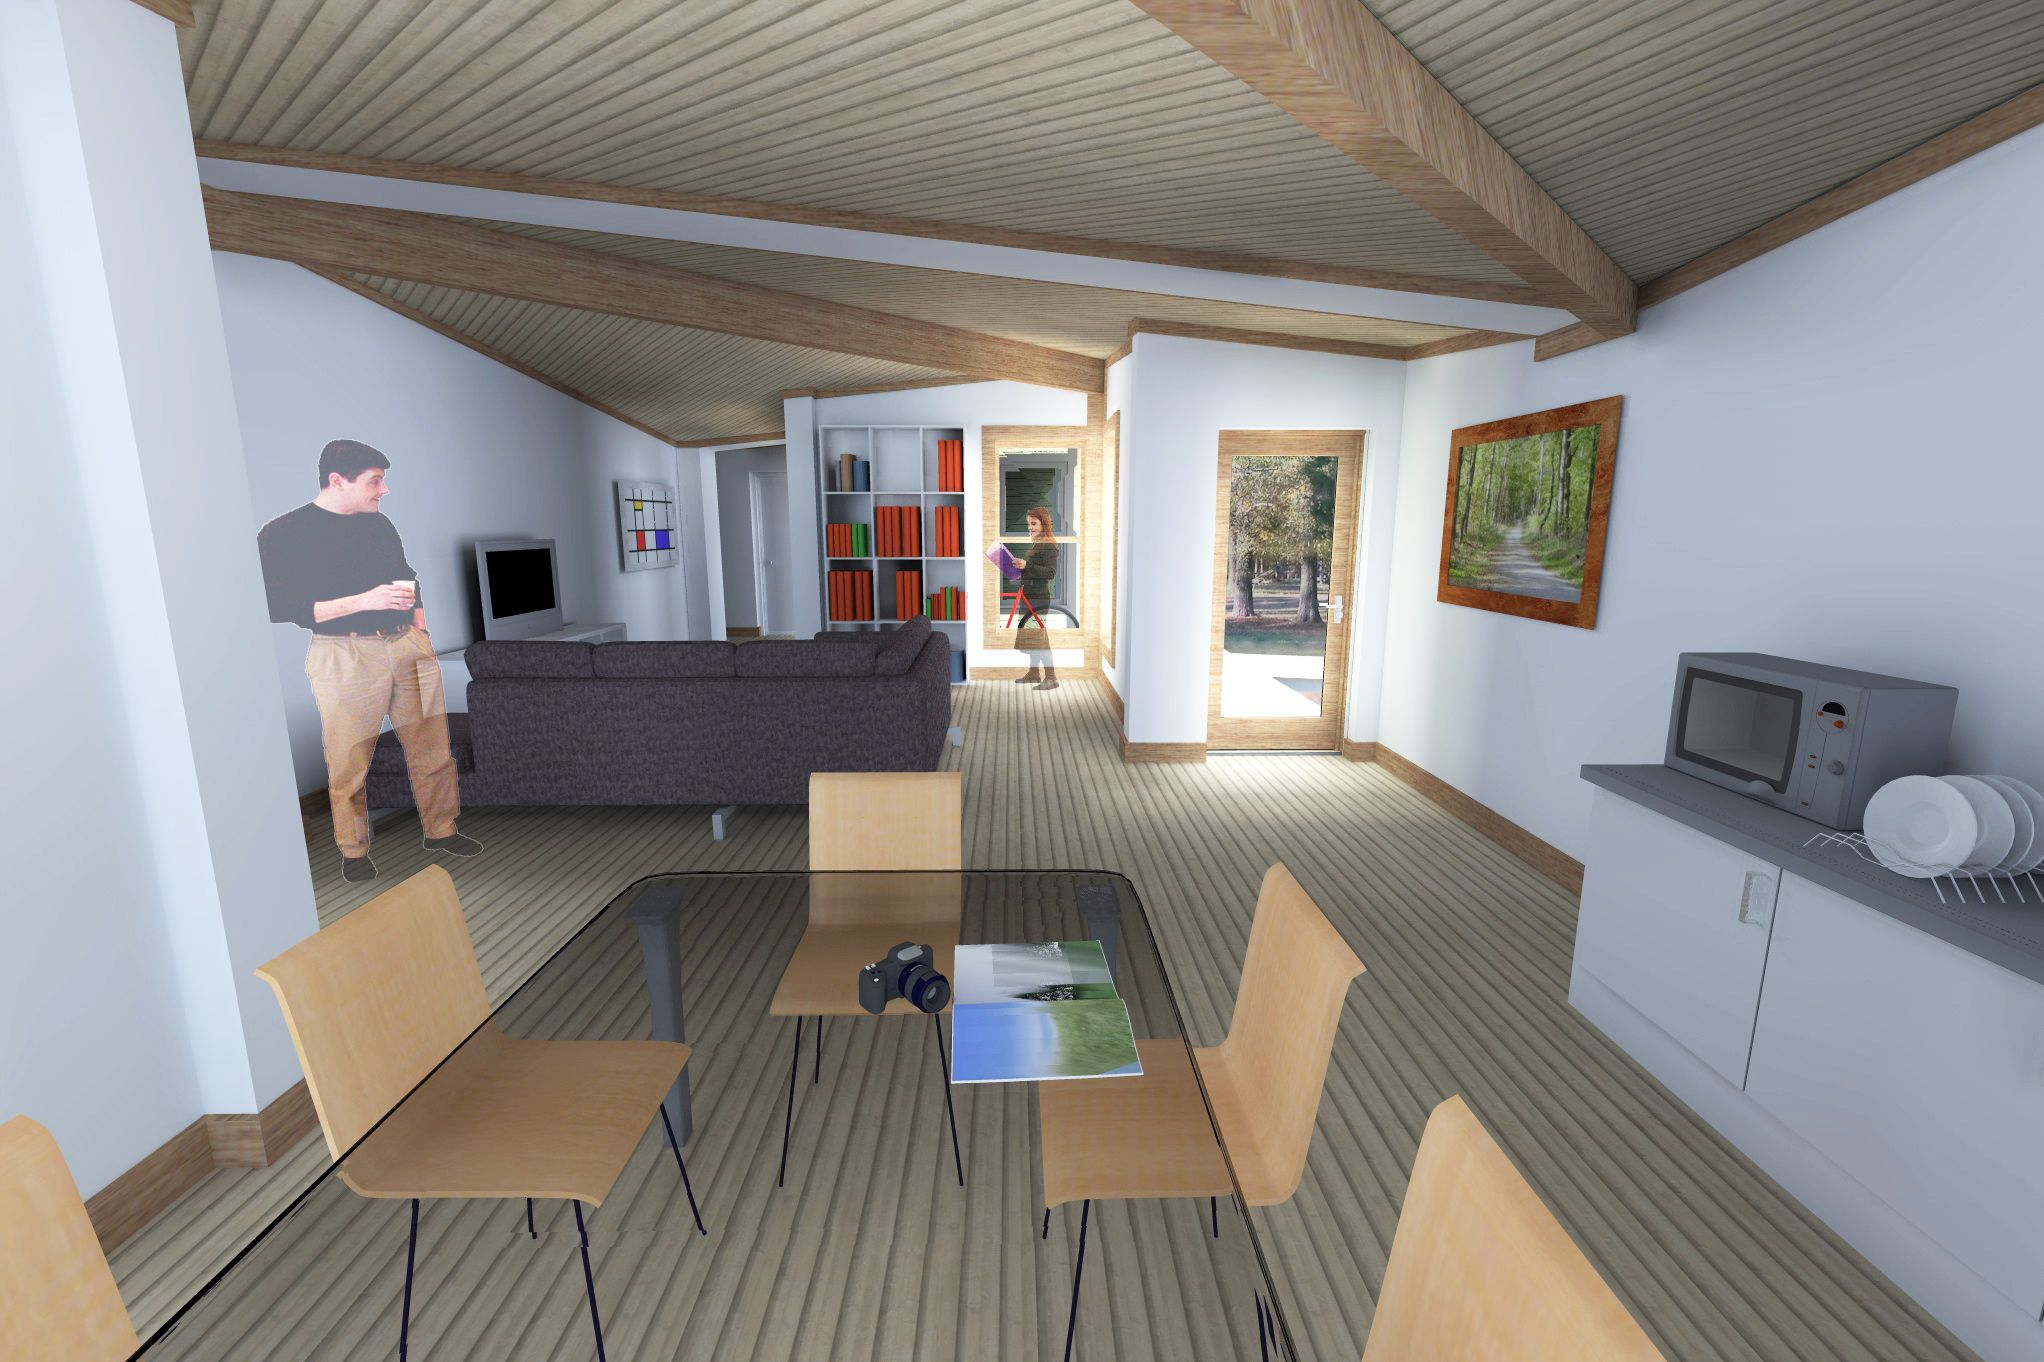 Man Cave Art Studio : More than storage sheds used as a workshop home office art studio